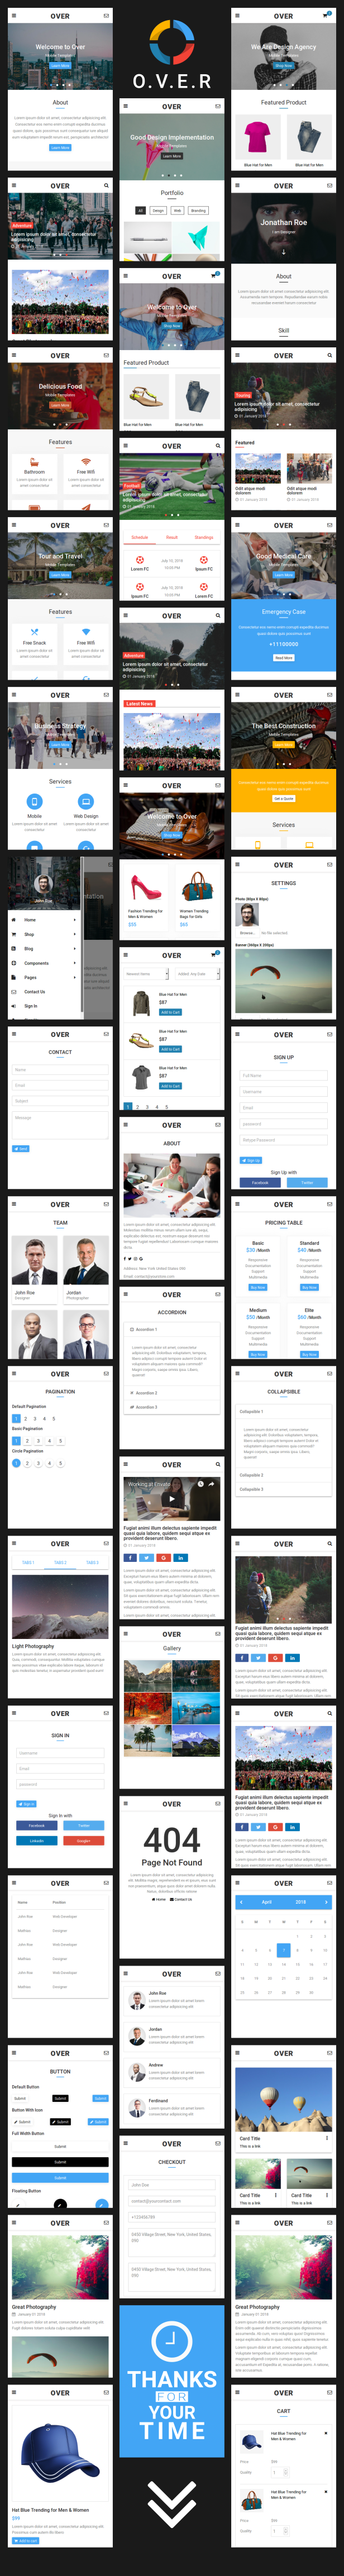 over multi concept web app ui kit mobile template by astylers